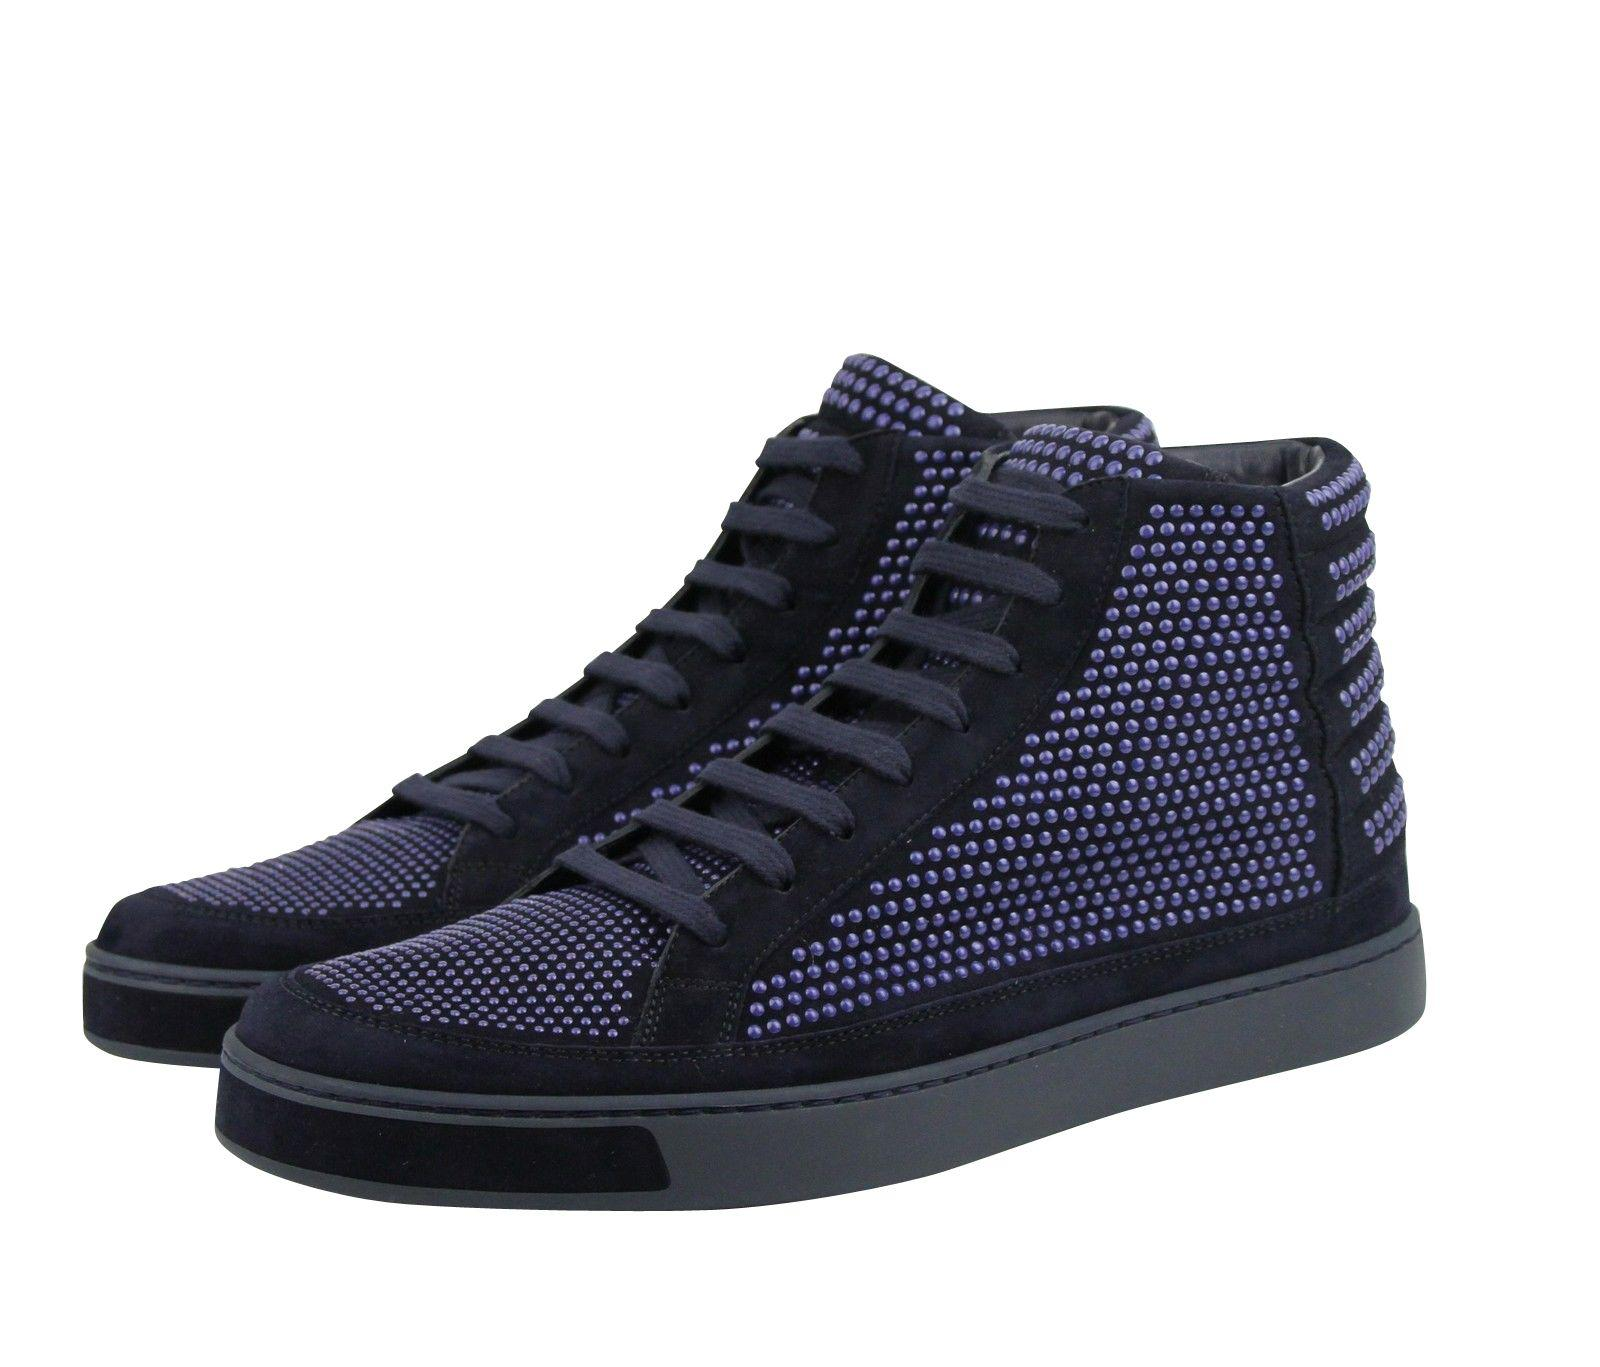 095bf64b24b4 Lyst - Gucci Studs Lace Up Dark Blue Suede Leather Hi Top Sneaker ...